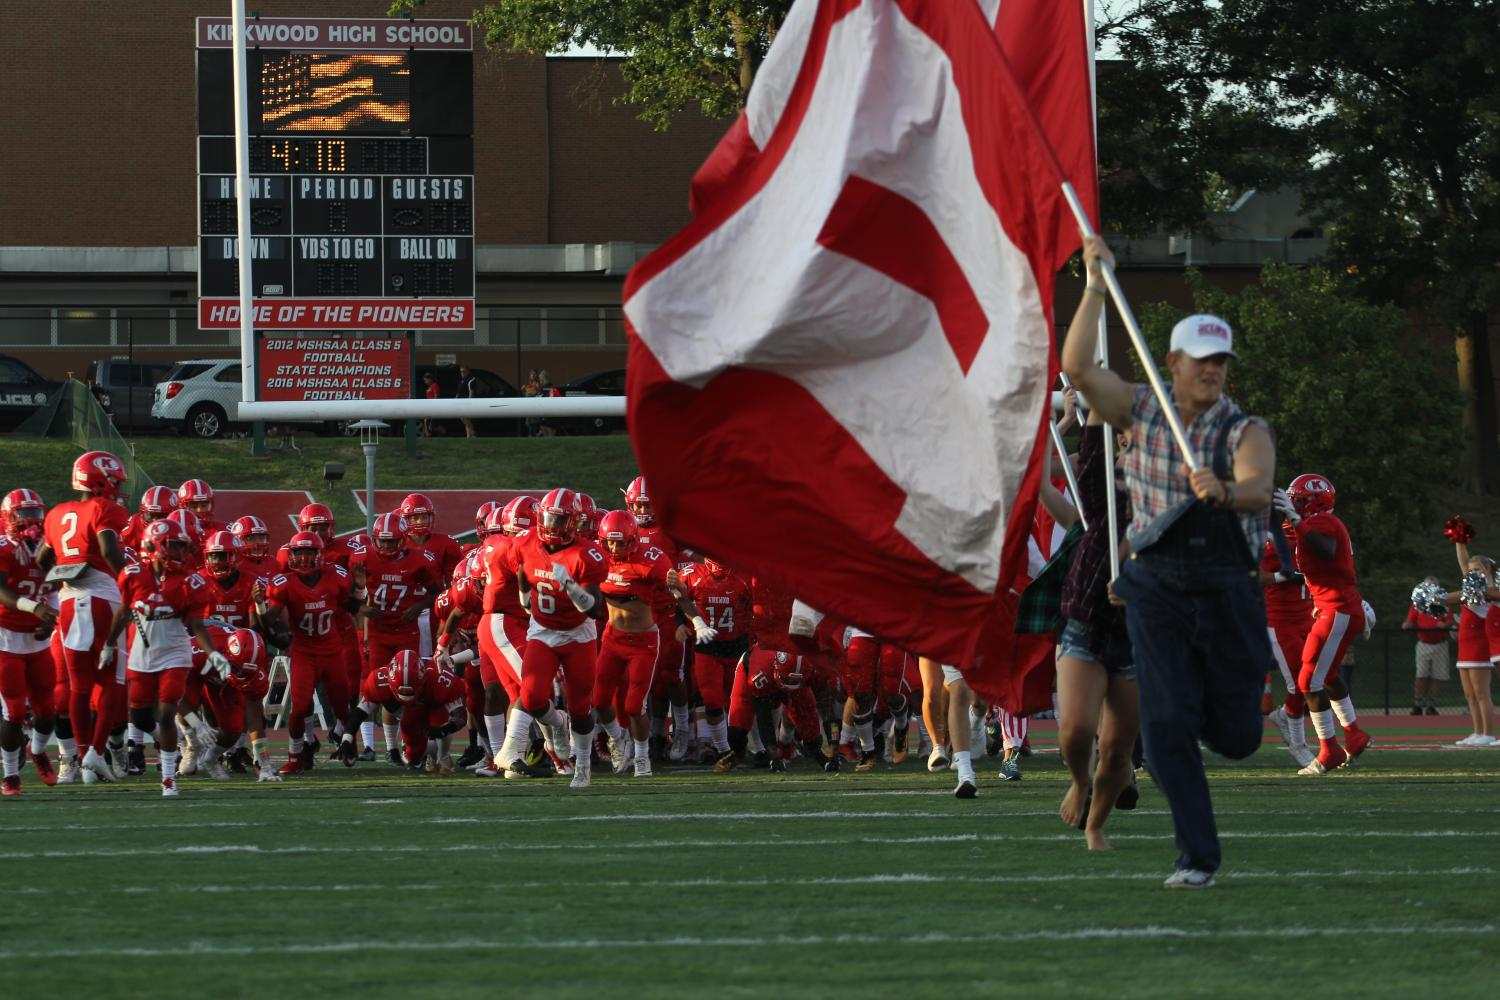 KHS+Pep+Nation+and+varsity+football+players+make+their+entrance+onto+the+field%2C+ready+to+start+their+first+home+game+on+Aug.+25th.%0A